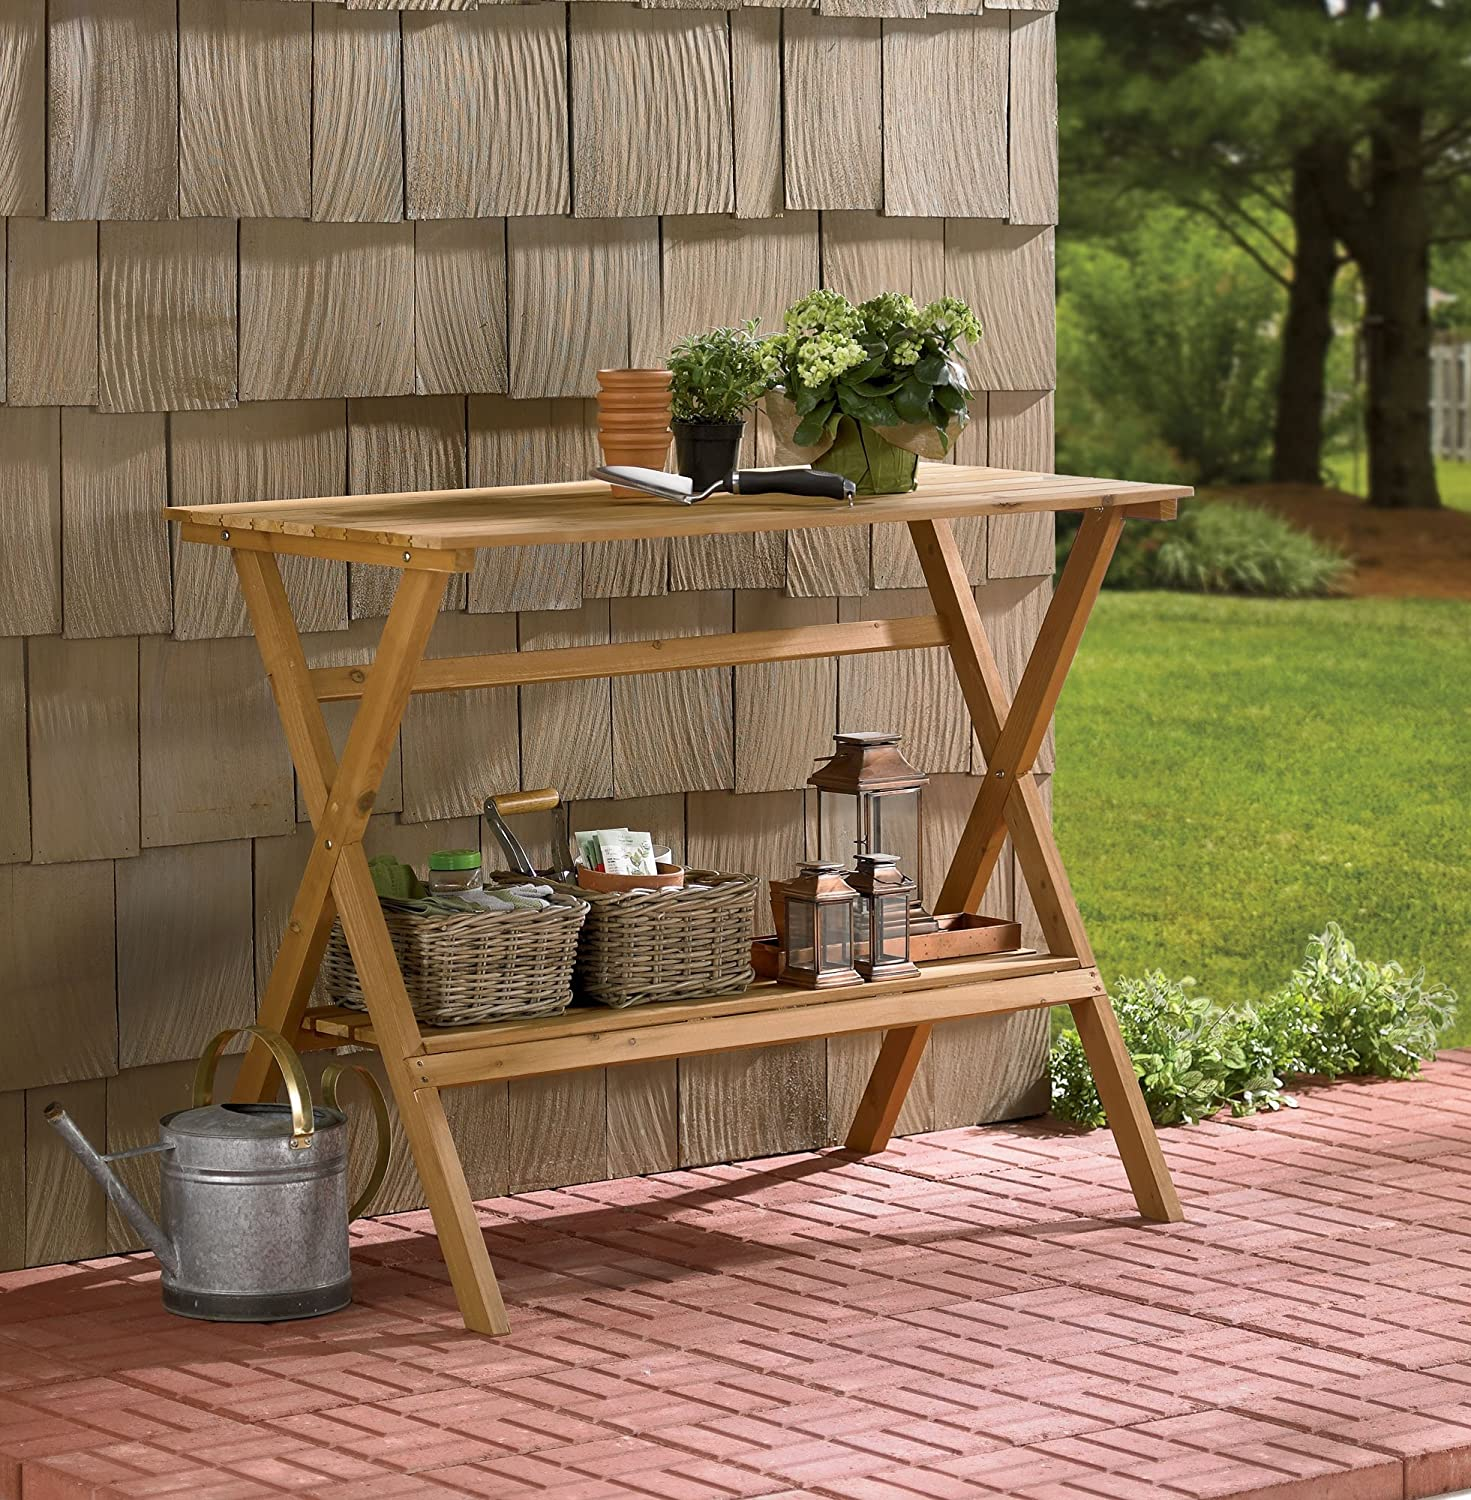 amazoncom merry garden fir wood potting bench and console table patio lawn u0026 garden